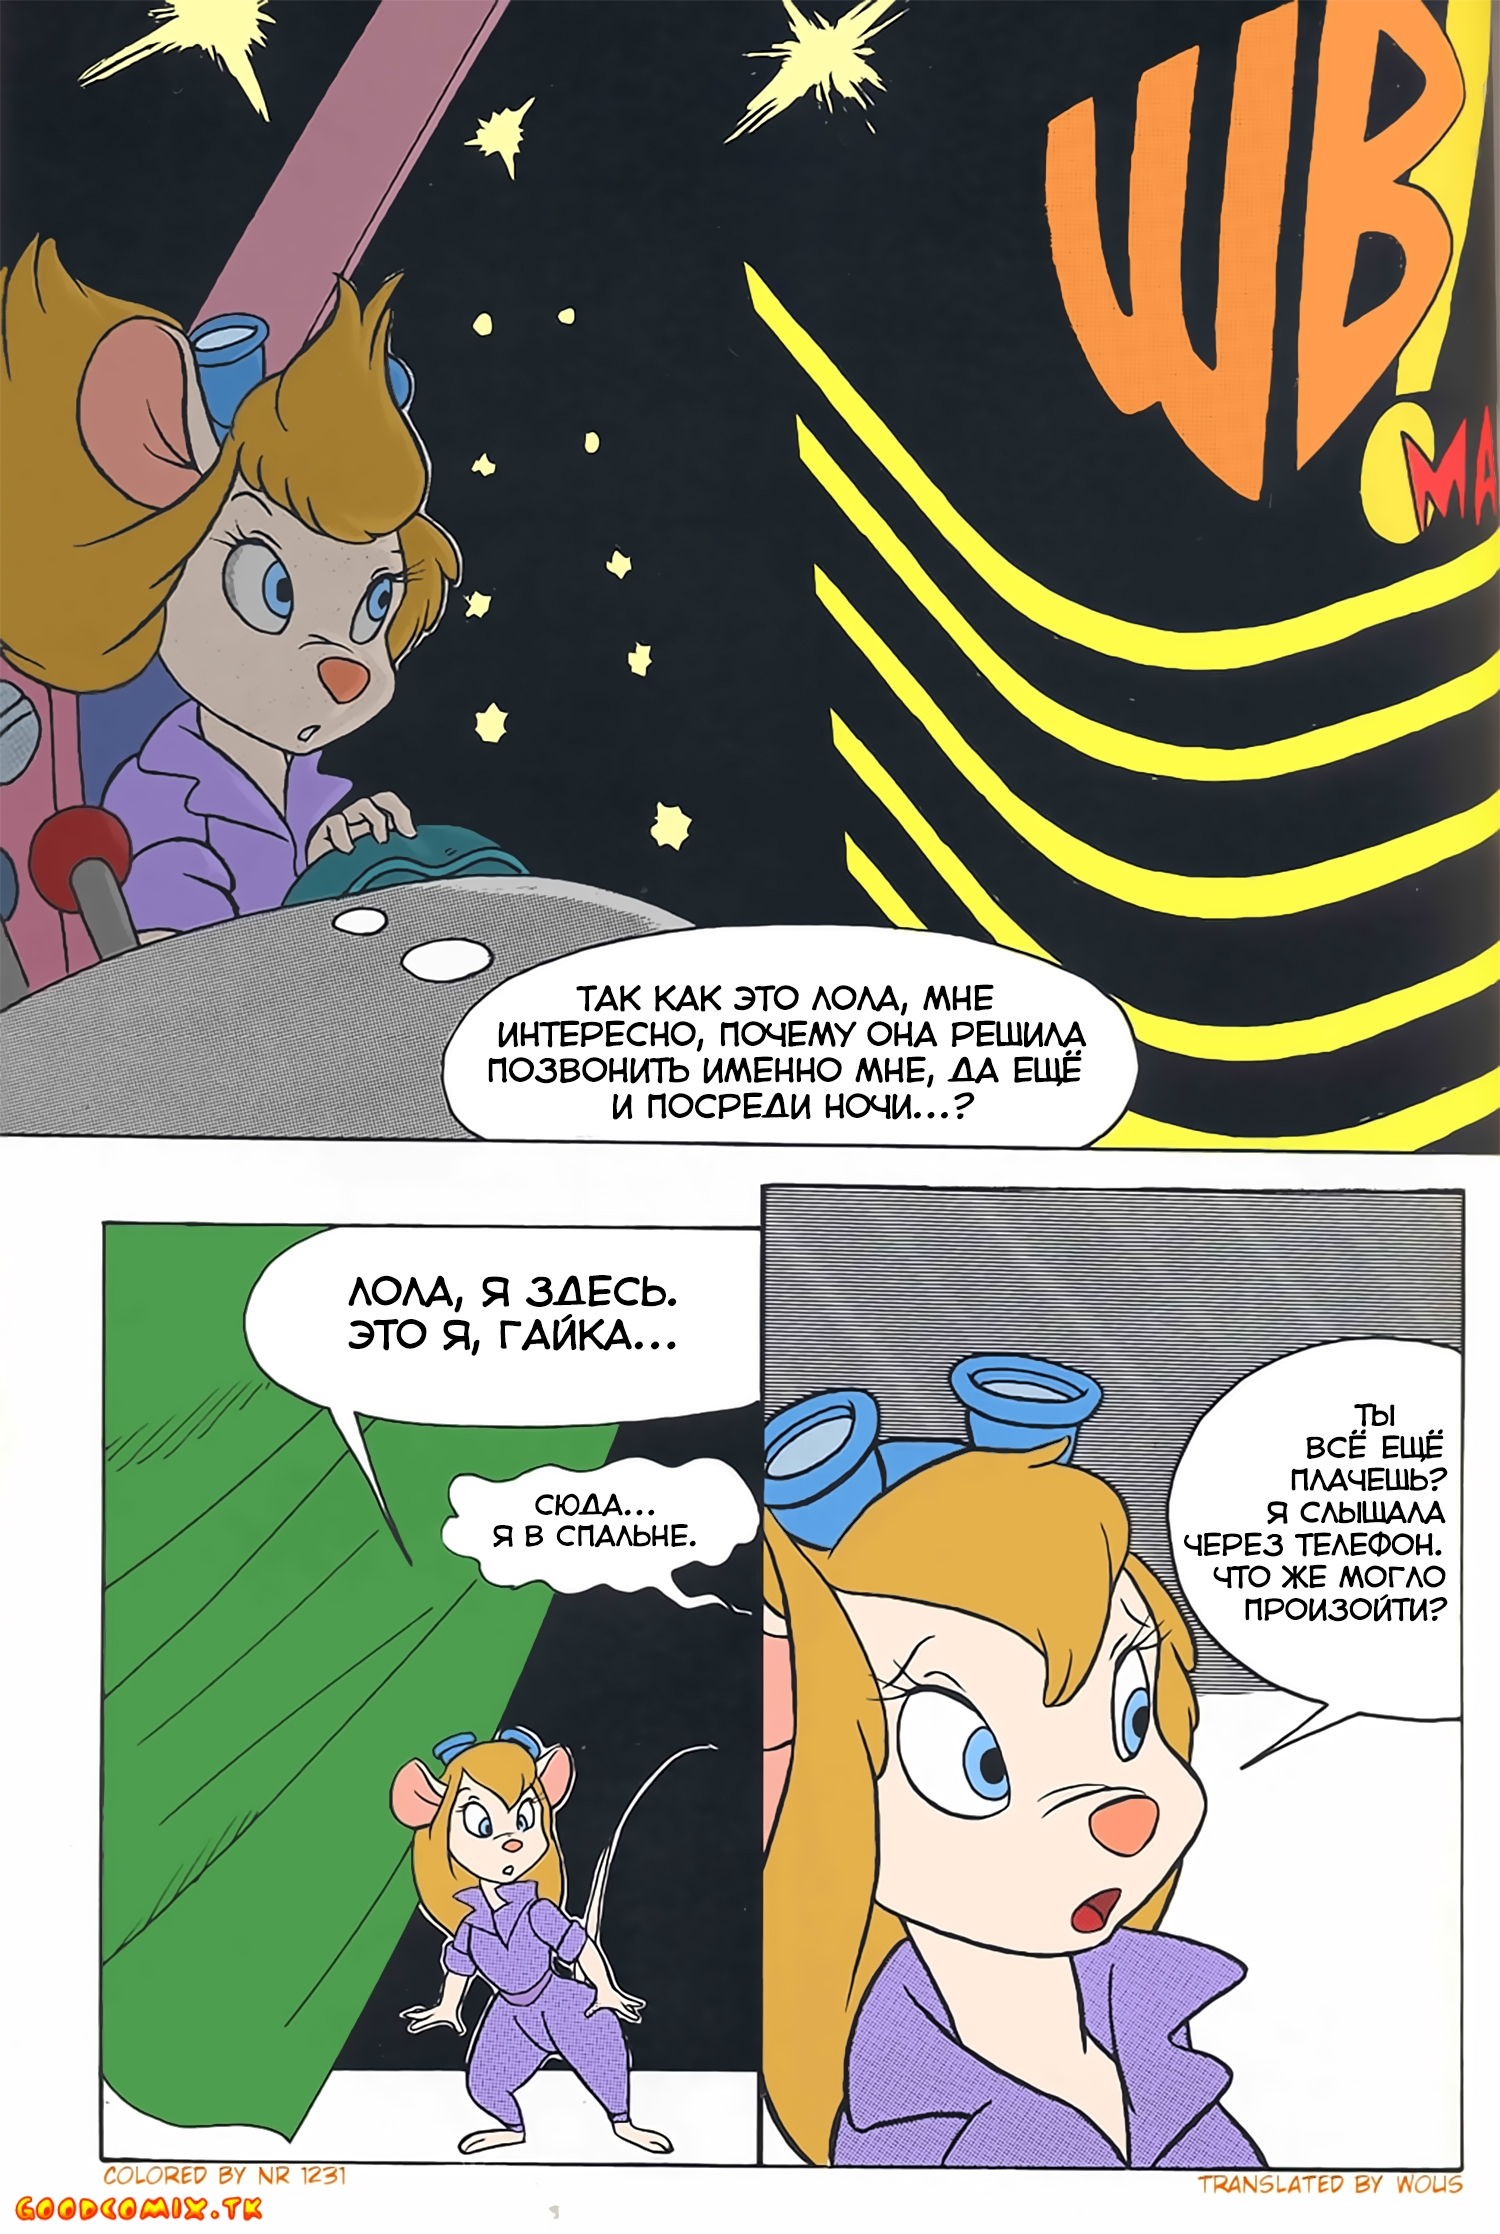 Goodcomix Crossover - [Ken Singshow] - Gadget Hackwrench and Lola Bunny - Women's Care